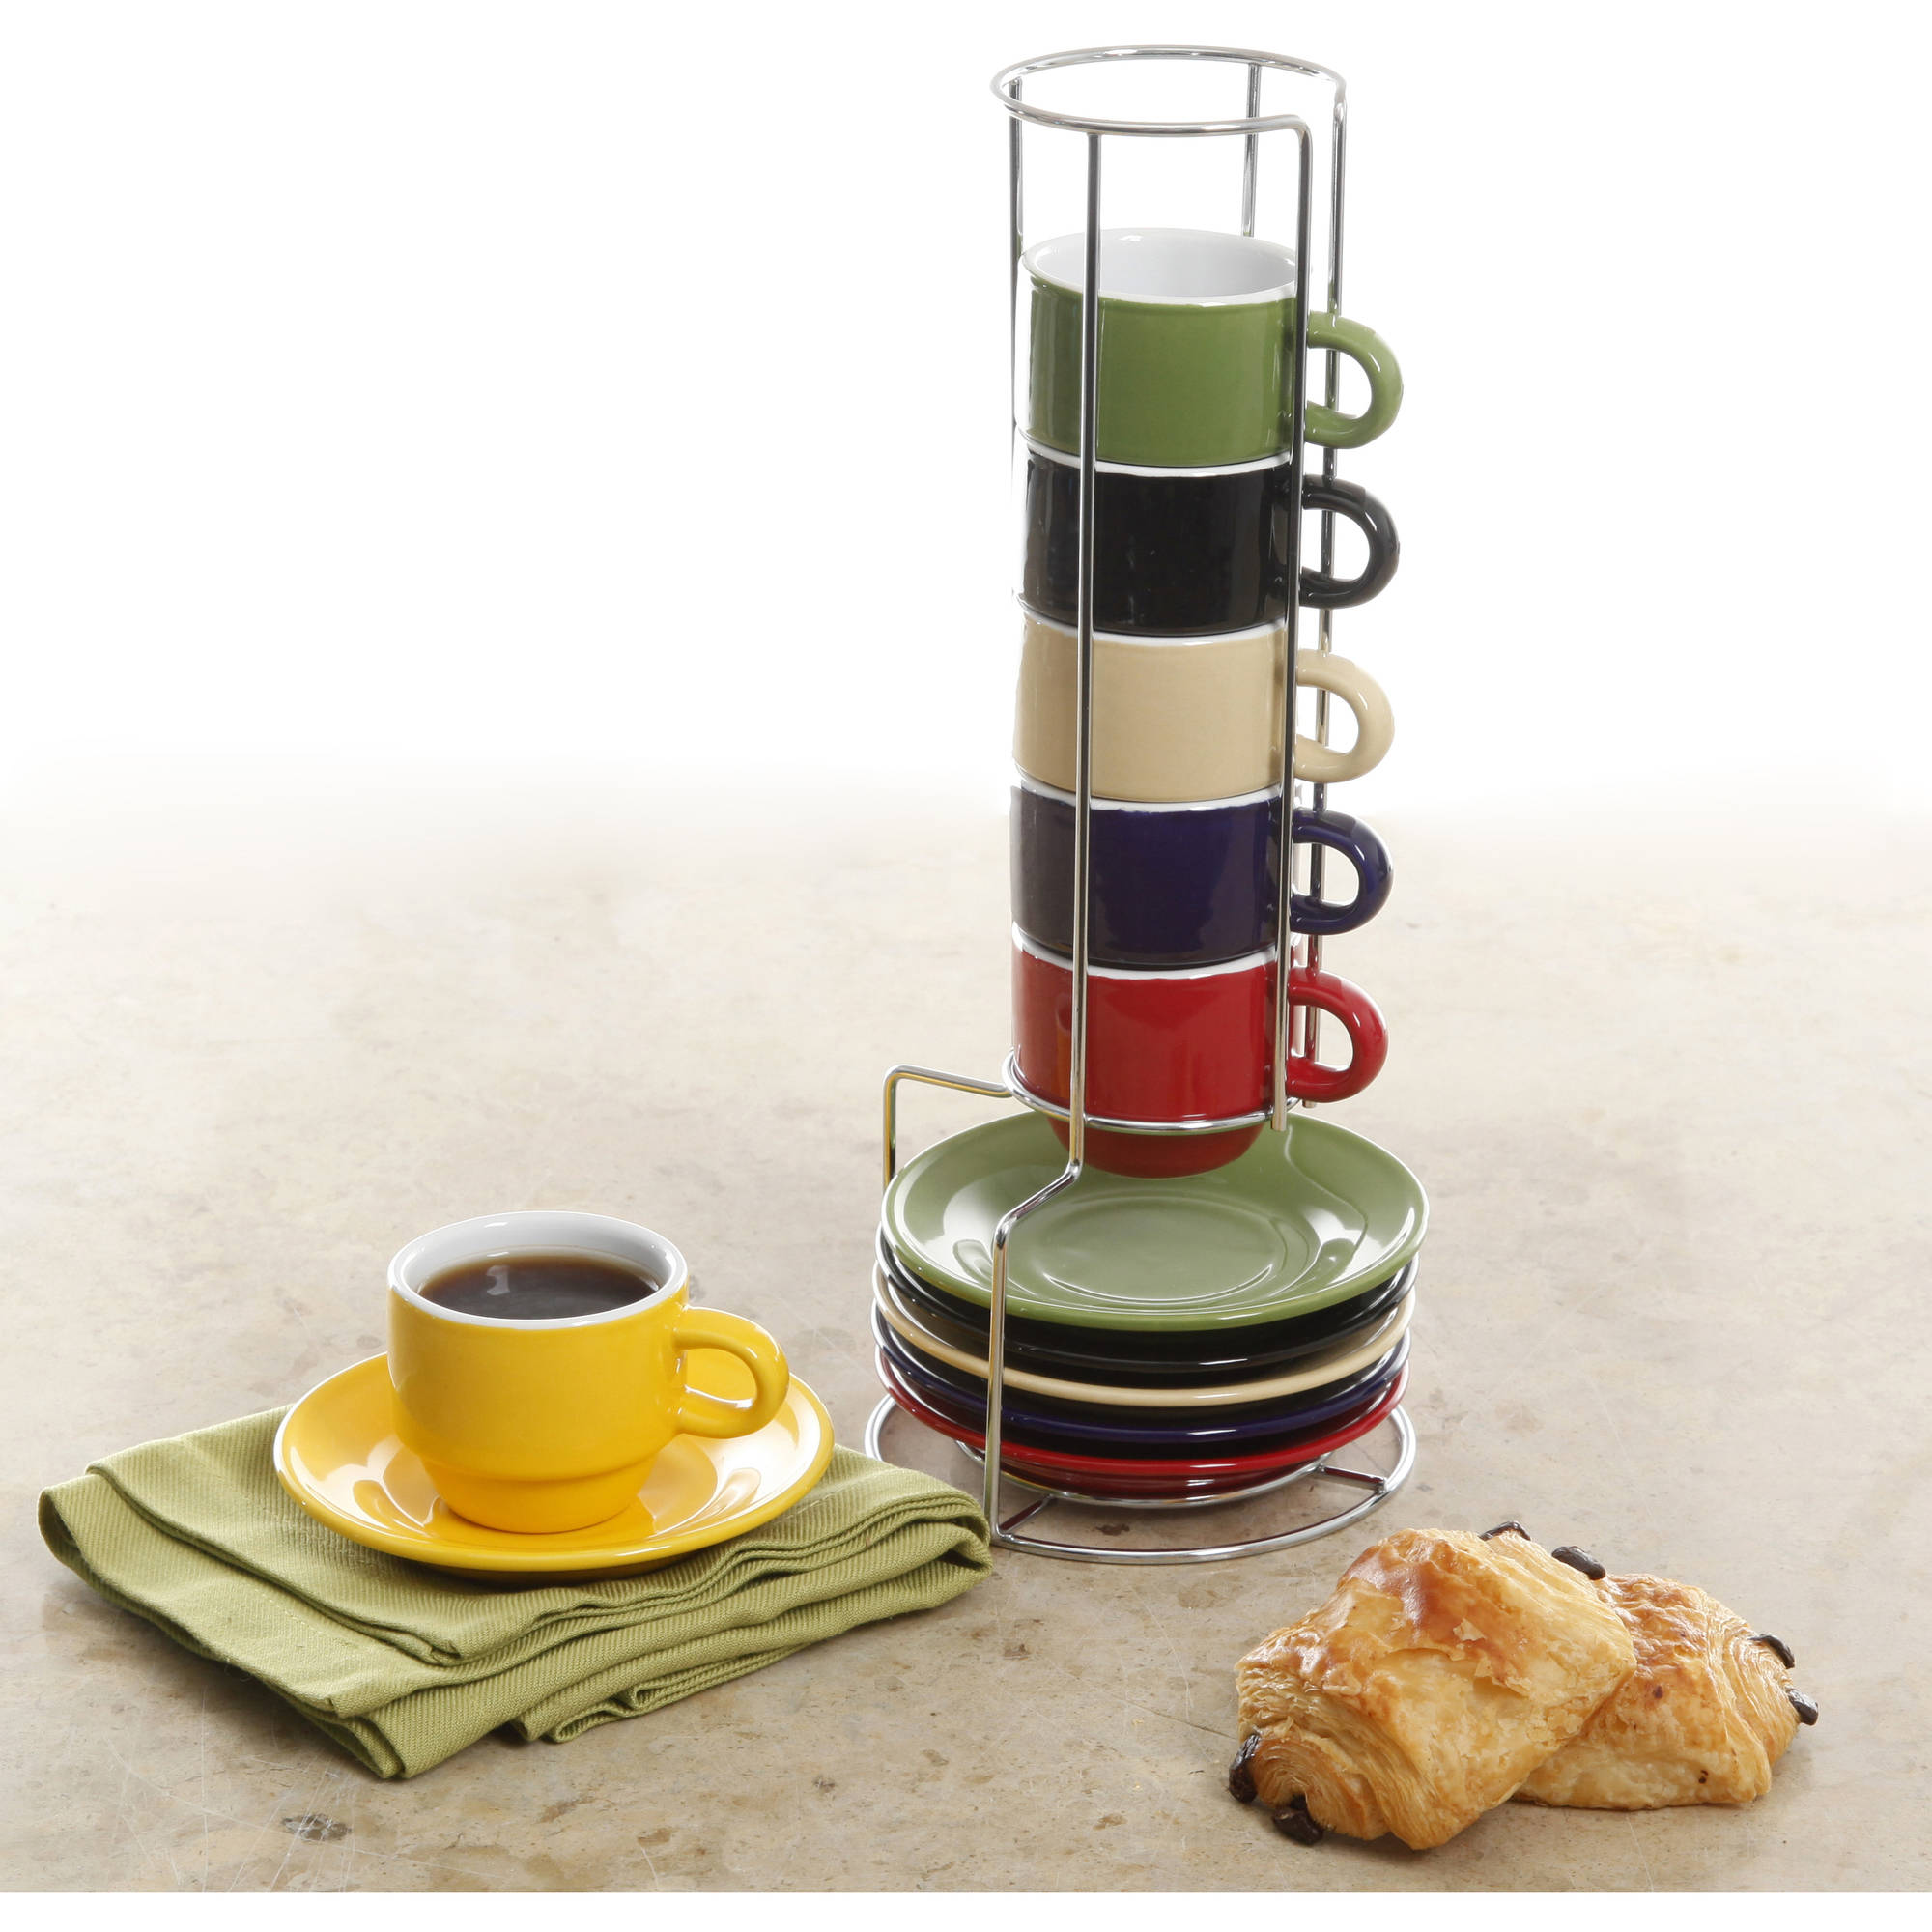 Gibson Home Jubilee 13-Piece Espresso Set With Caddy